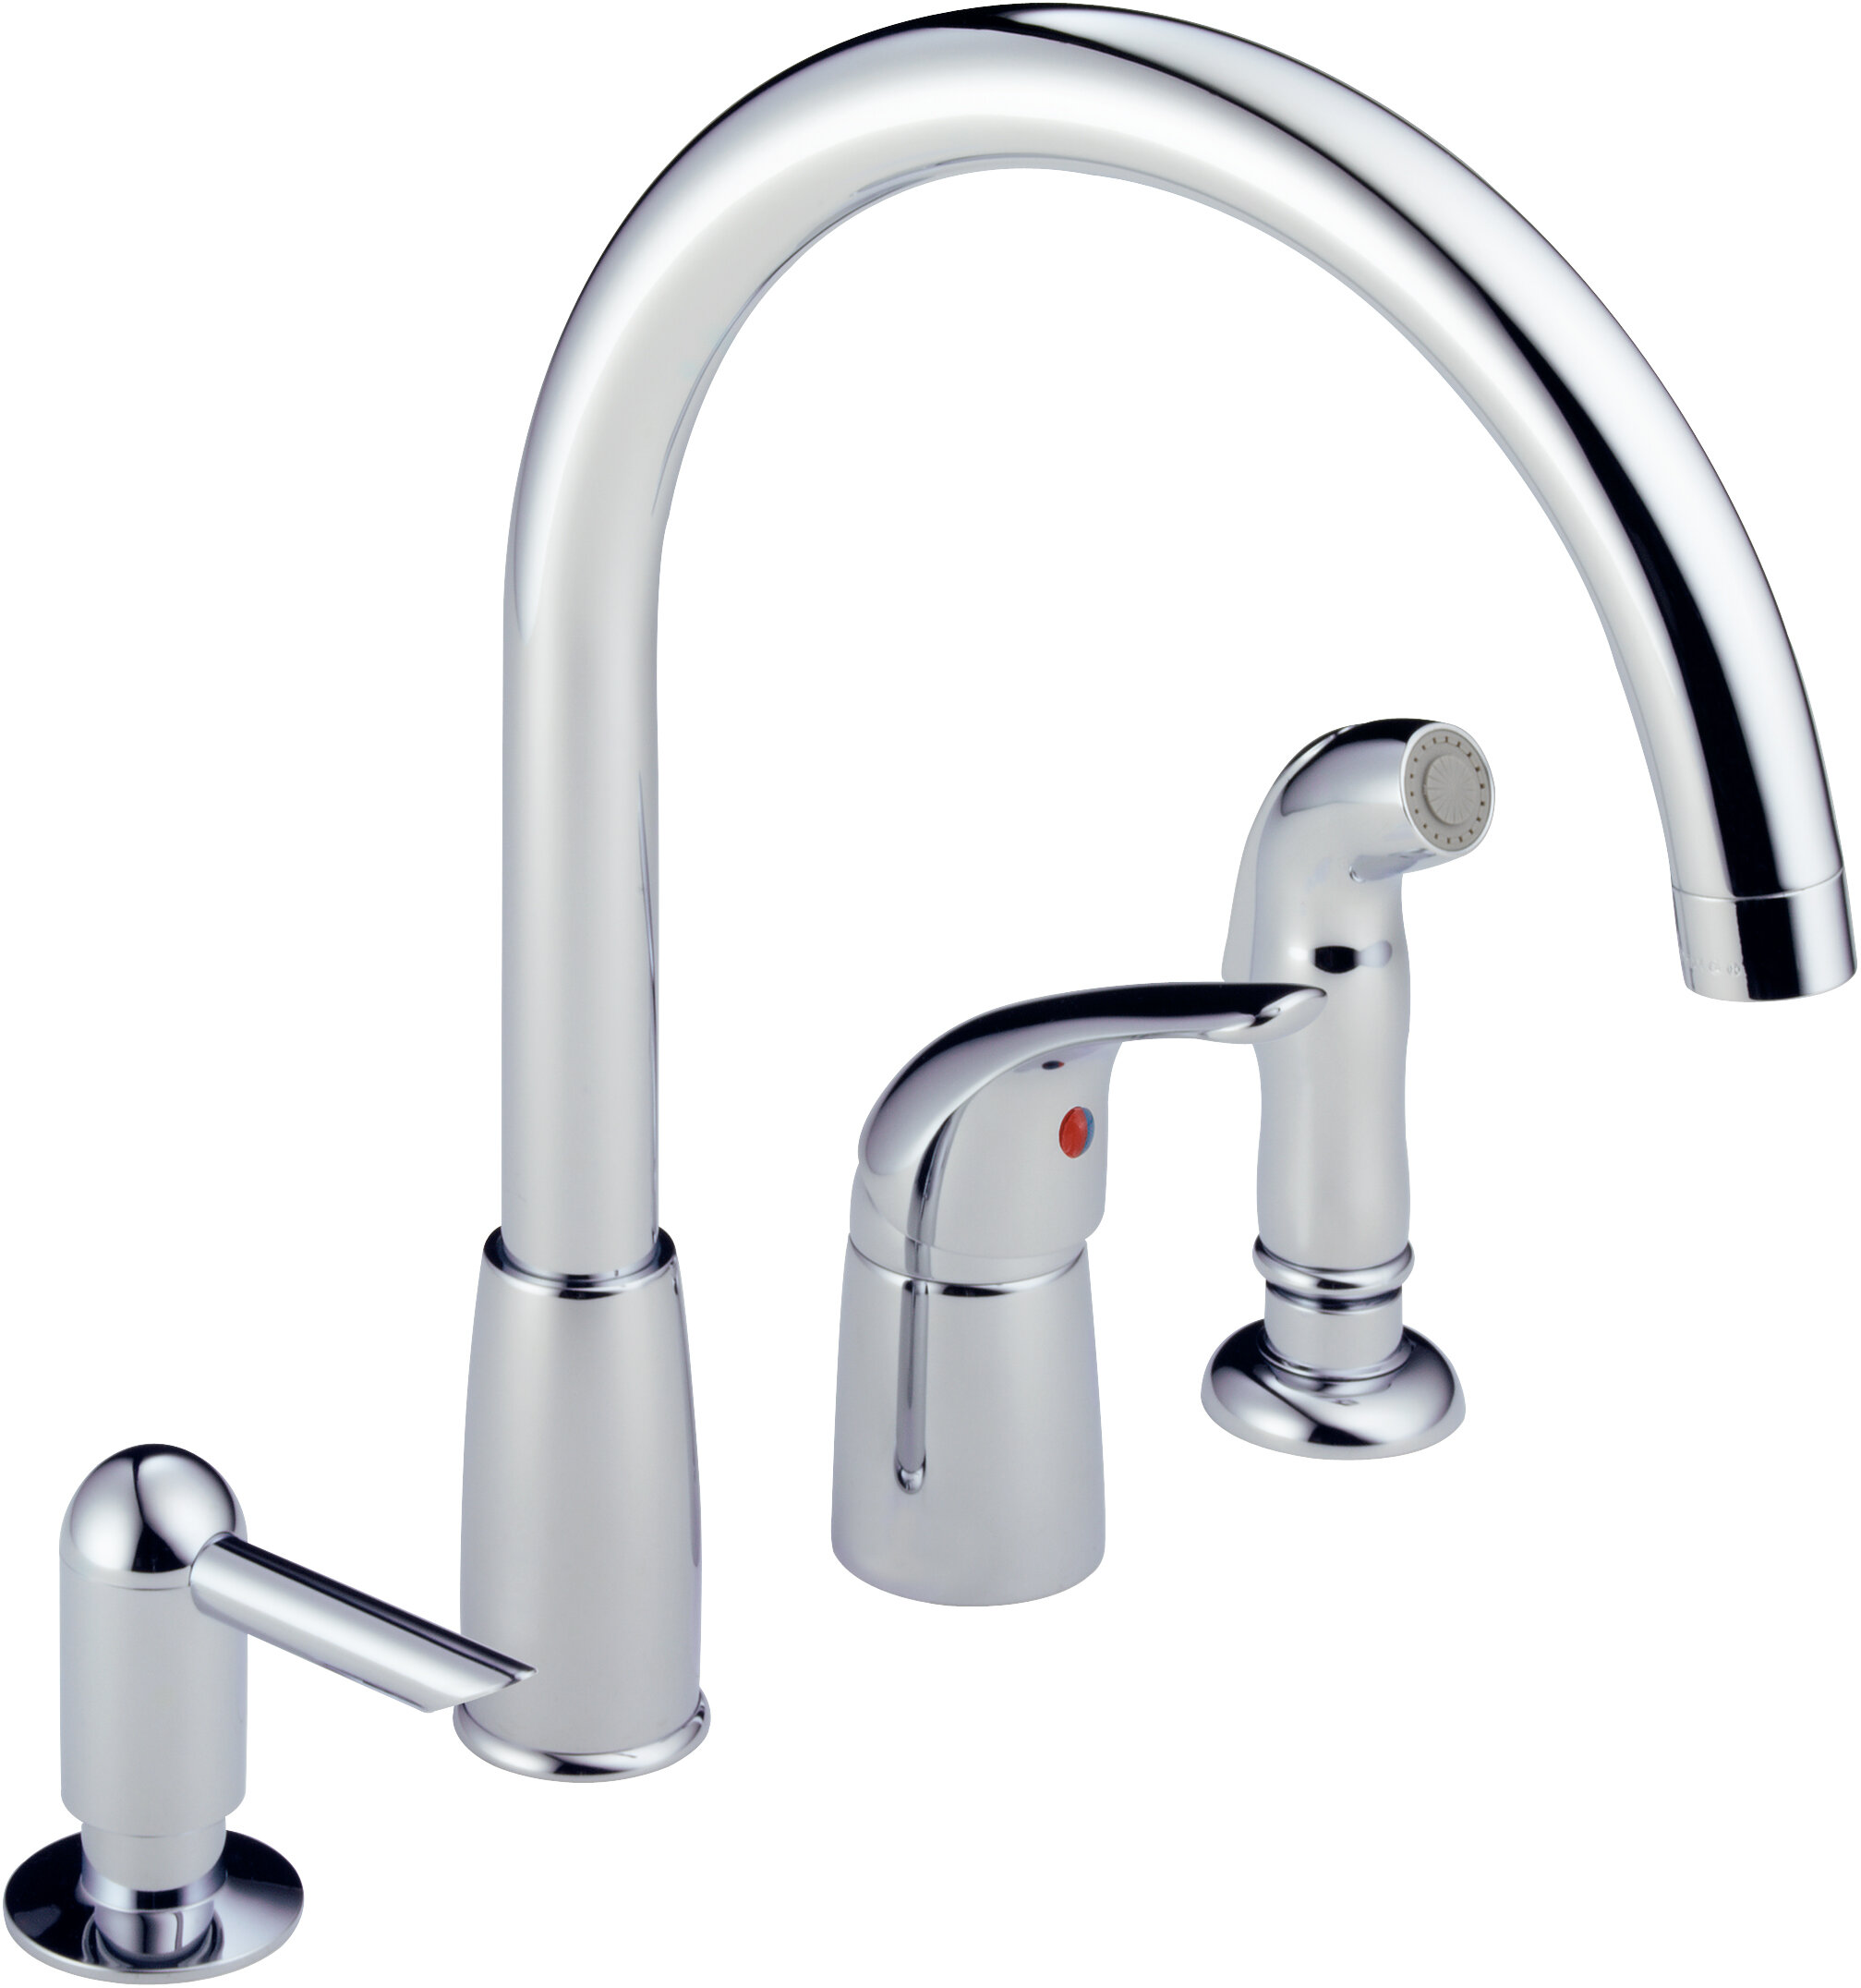 30 How To Fix A Dripping Peerless Bathroom Faucet